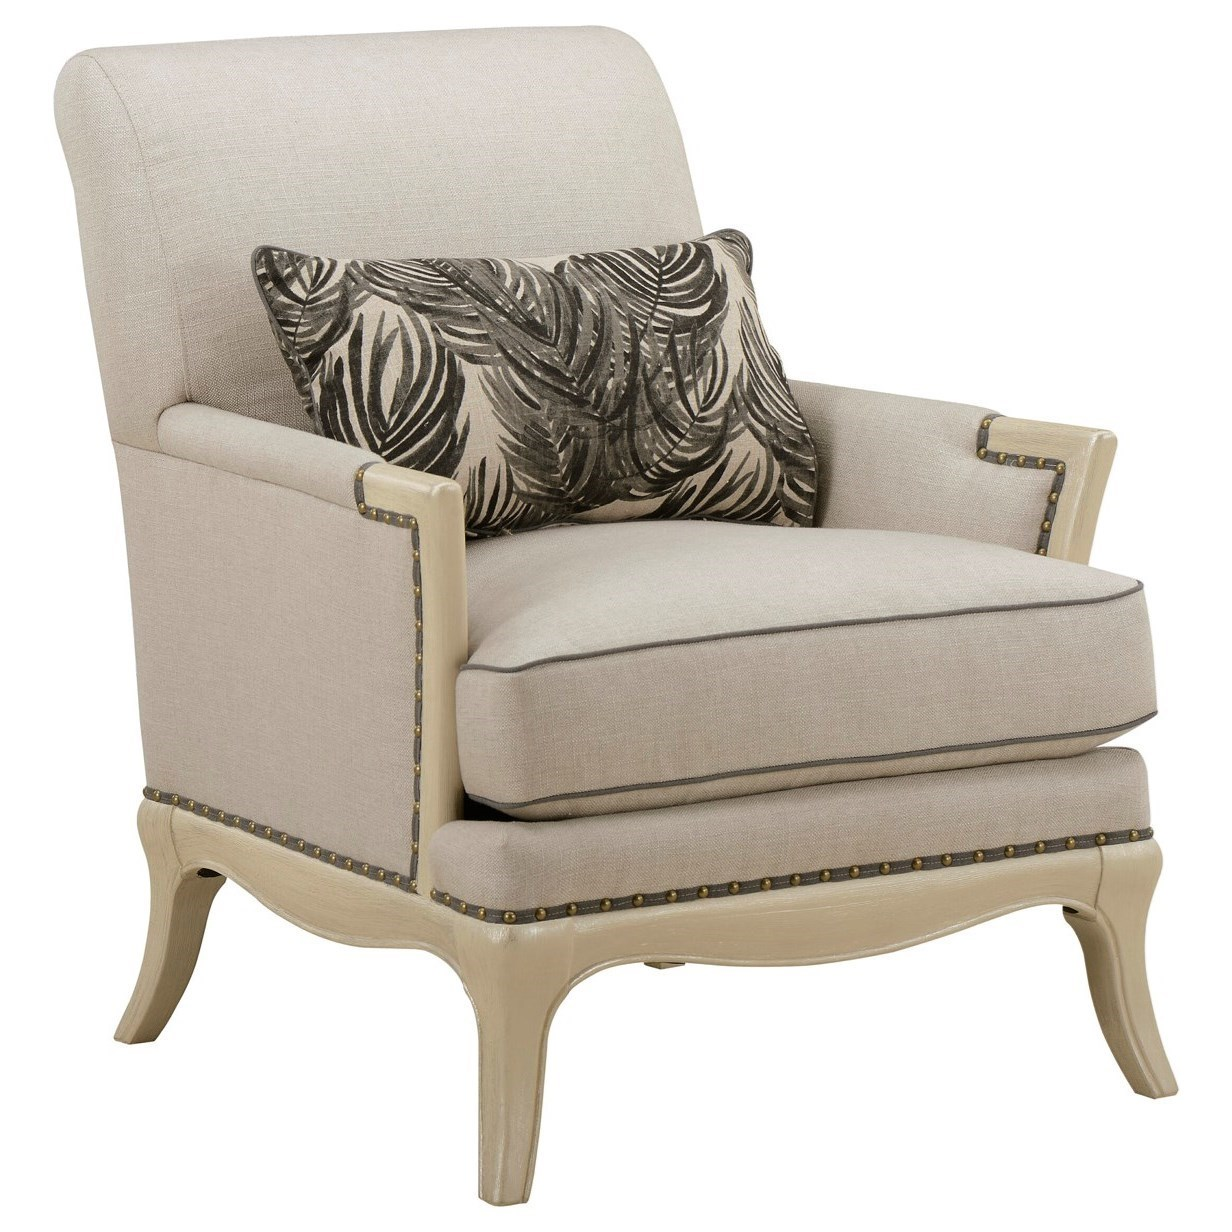 A.R.T. Furniture Inc St. GermainSiene Shimmer Matching Chair ...